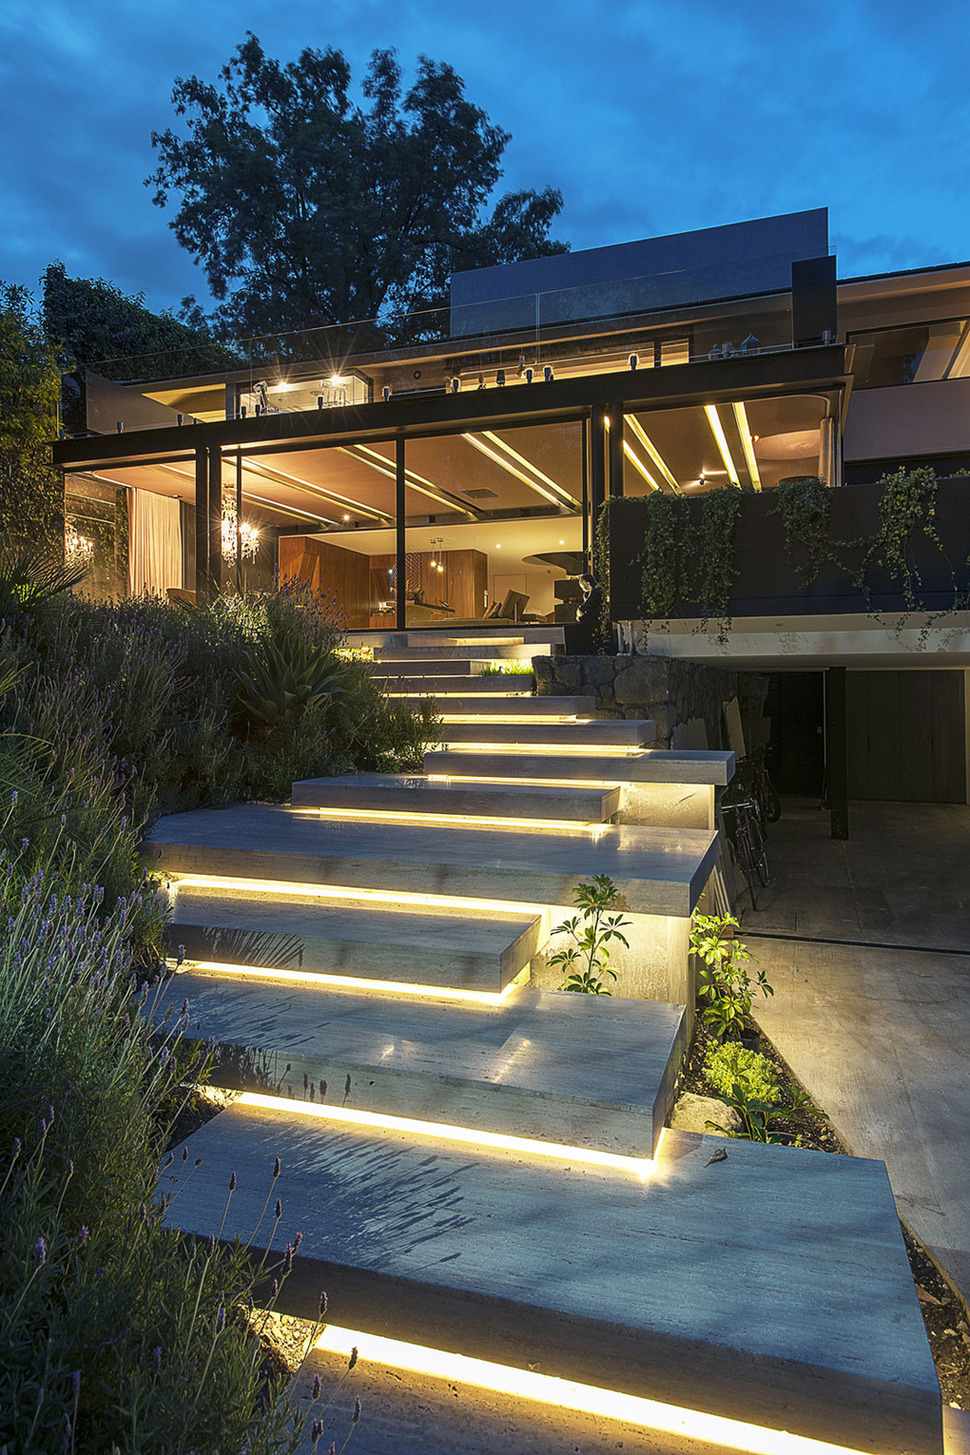 View In Gallery Home Expansion Steel Glass Concrete Structure 2 Steps Thumb  Autox945 42156 Home Expansion Adds Steel And